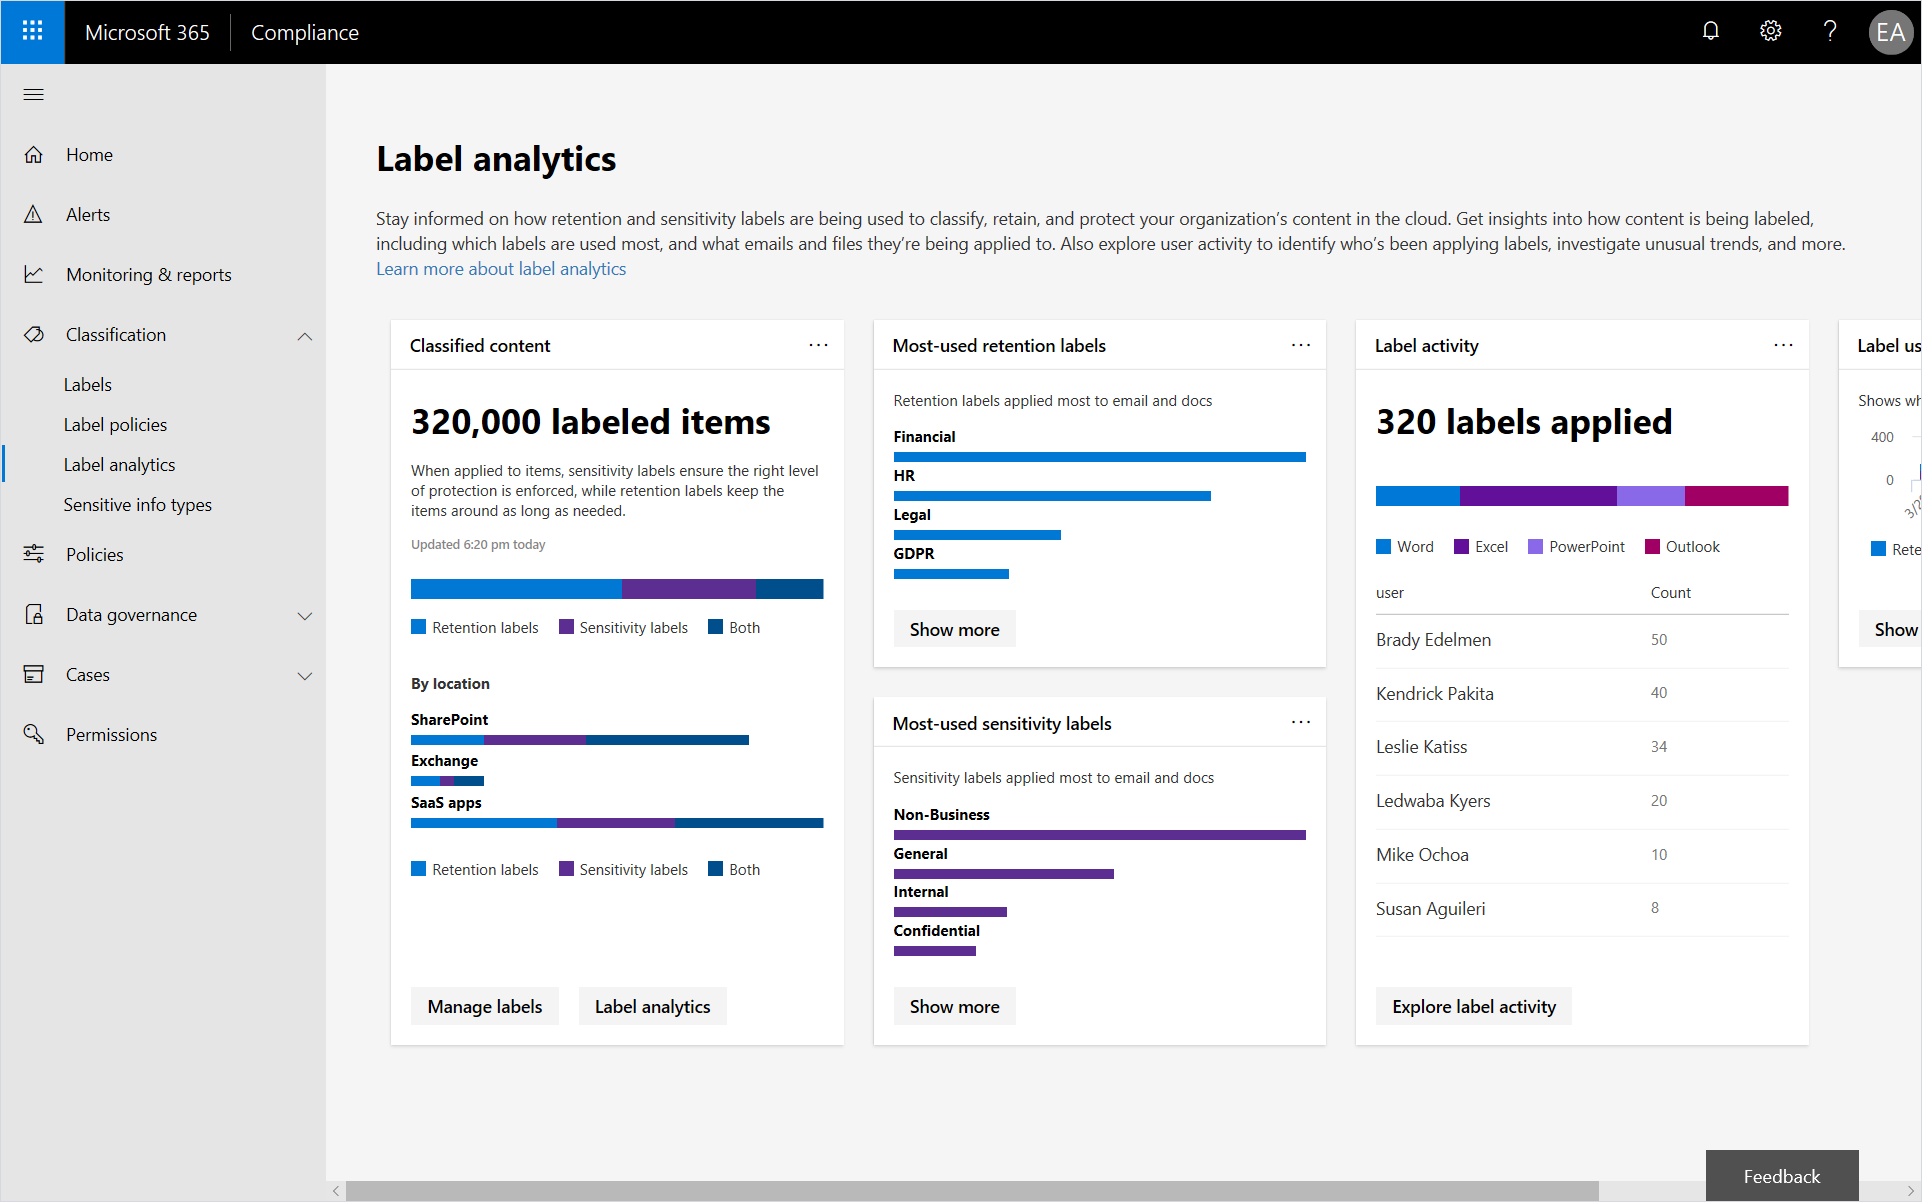 Screenshot of label analytics in the Microsoft 365 compliance tenant dashboard.